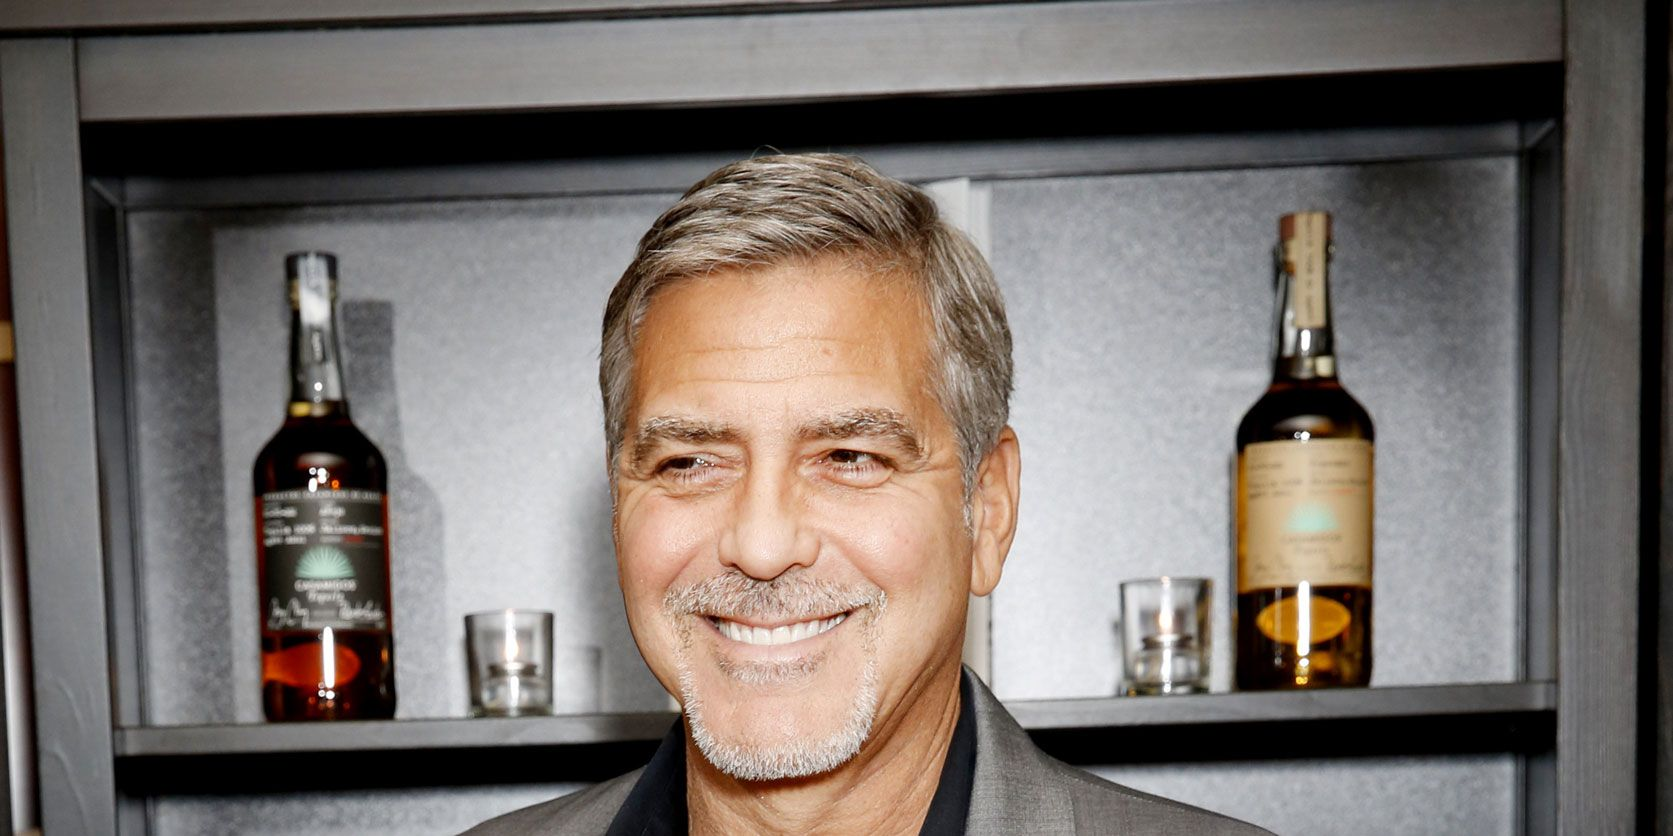 Remember when George Clooney